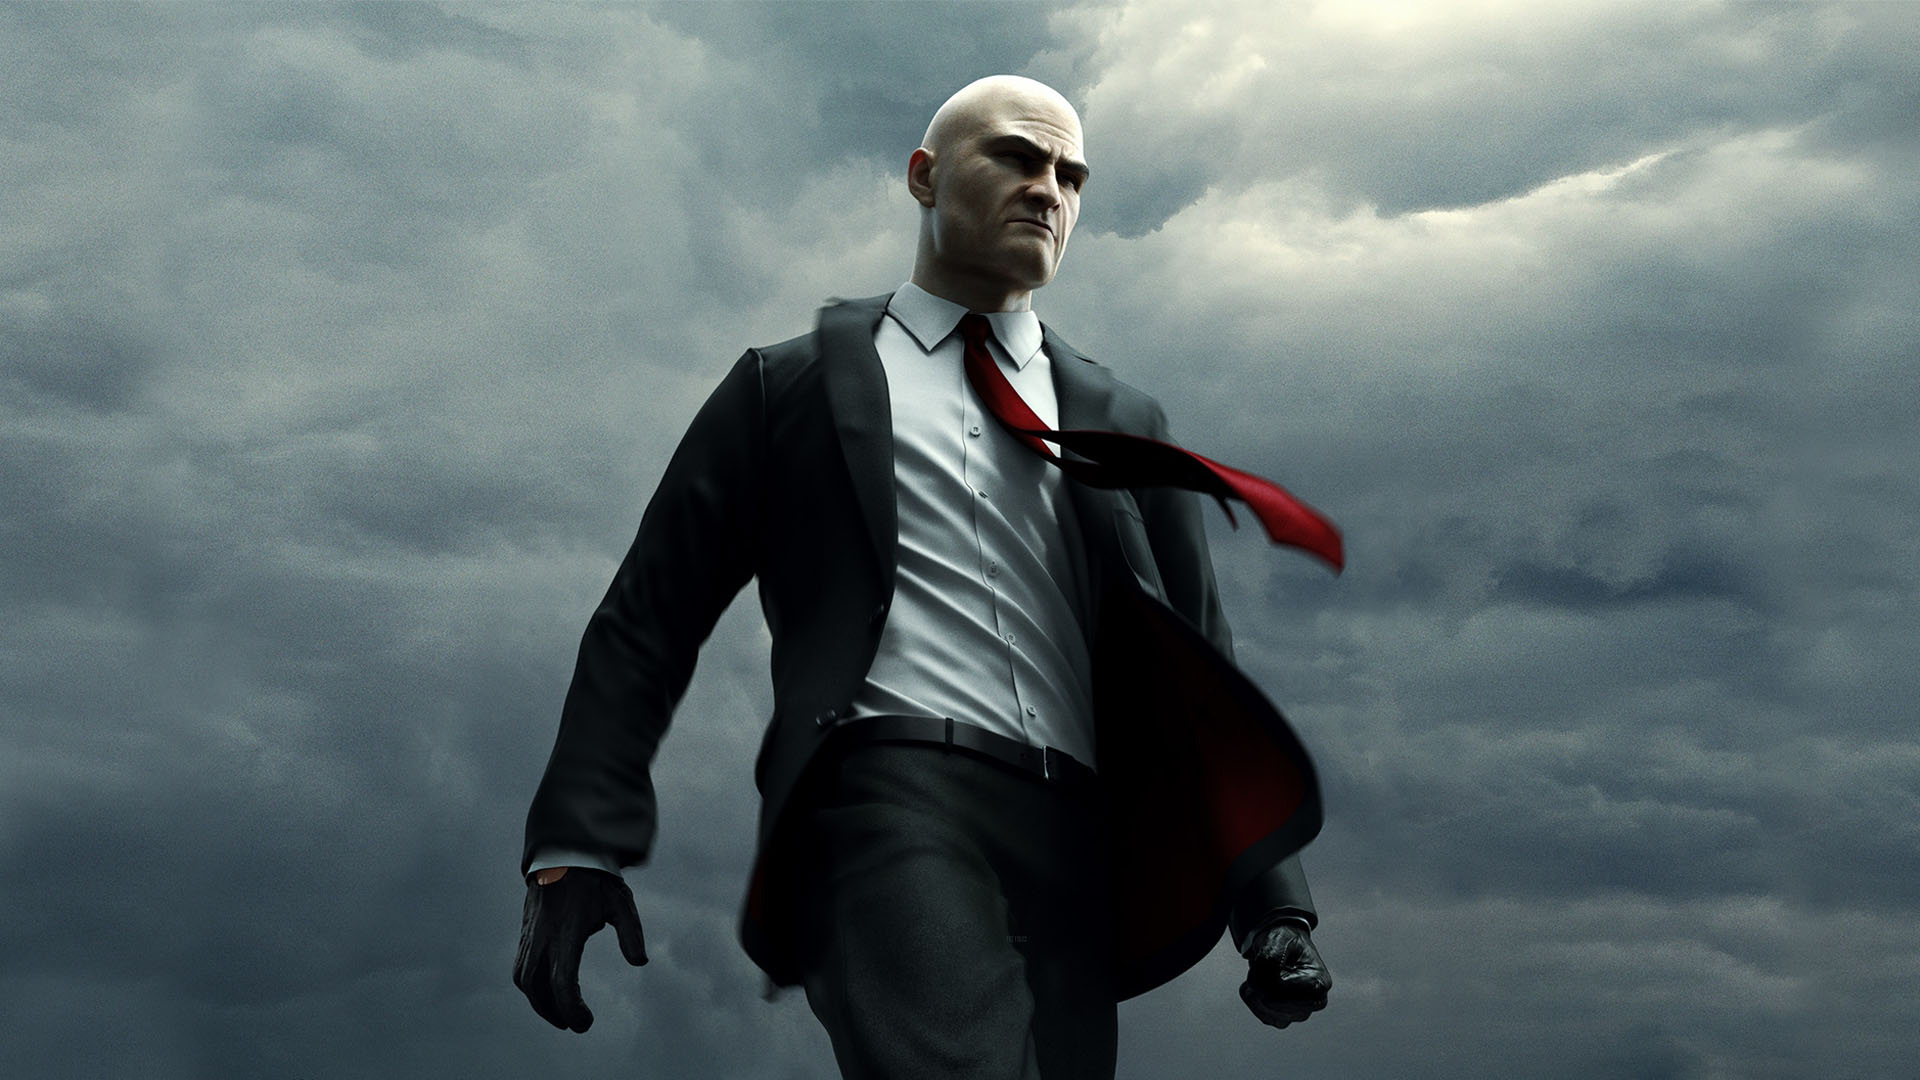 file_7778_Hitman-Absolution1